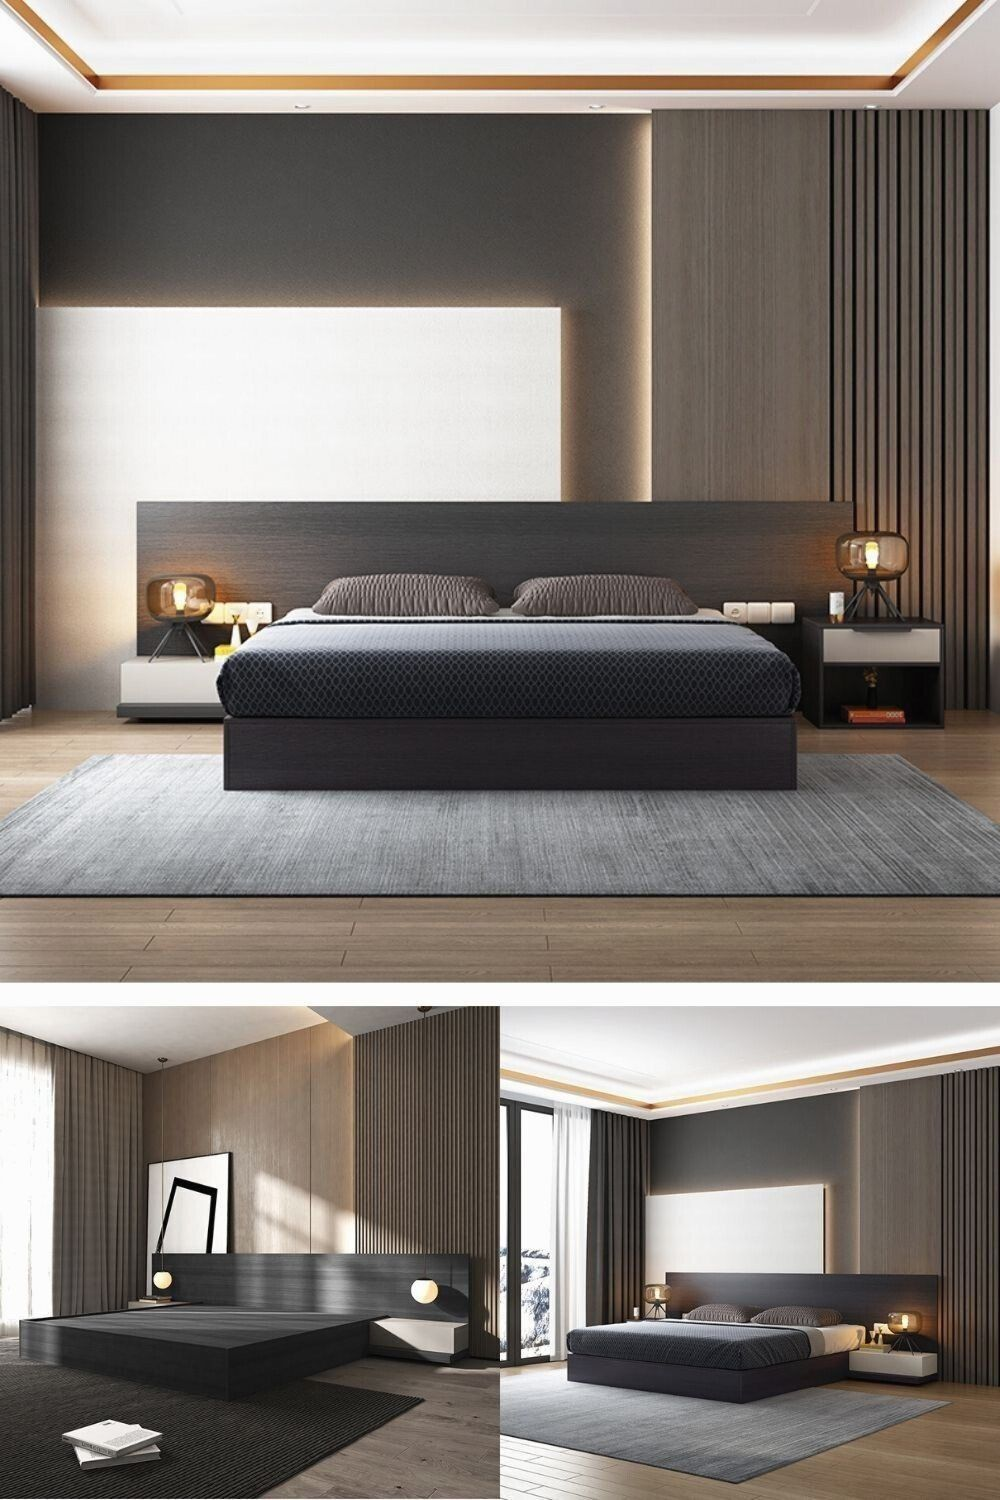 Modern Home Furniture Bedroom Open Spaces Luxury Bedroom Master Luxury Master Bedroom Design Luxury Bedroom Design Minimalist modern furniture bedroom